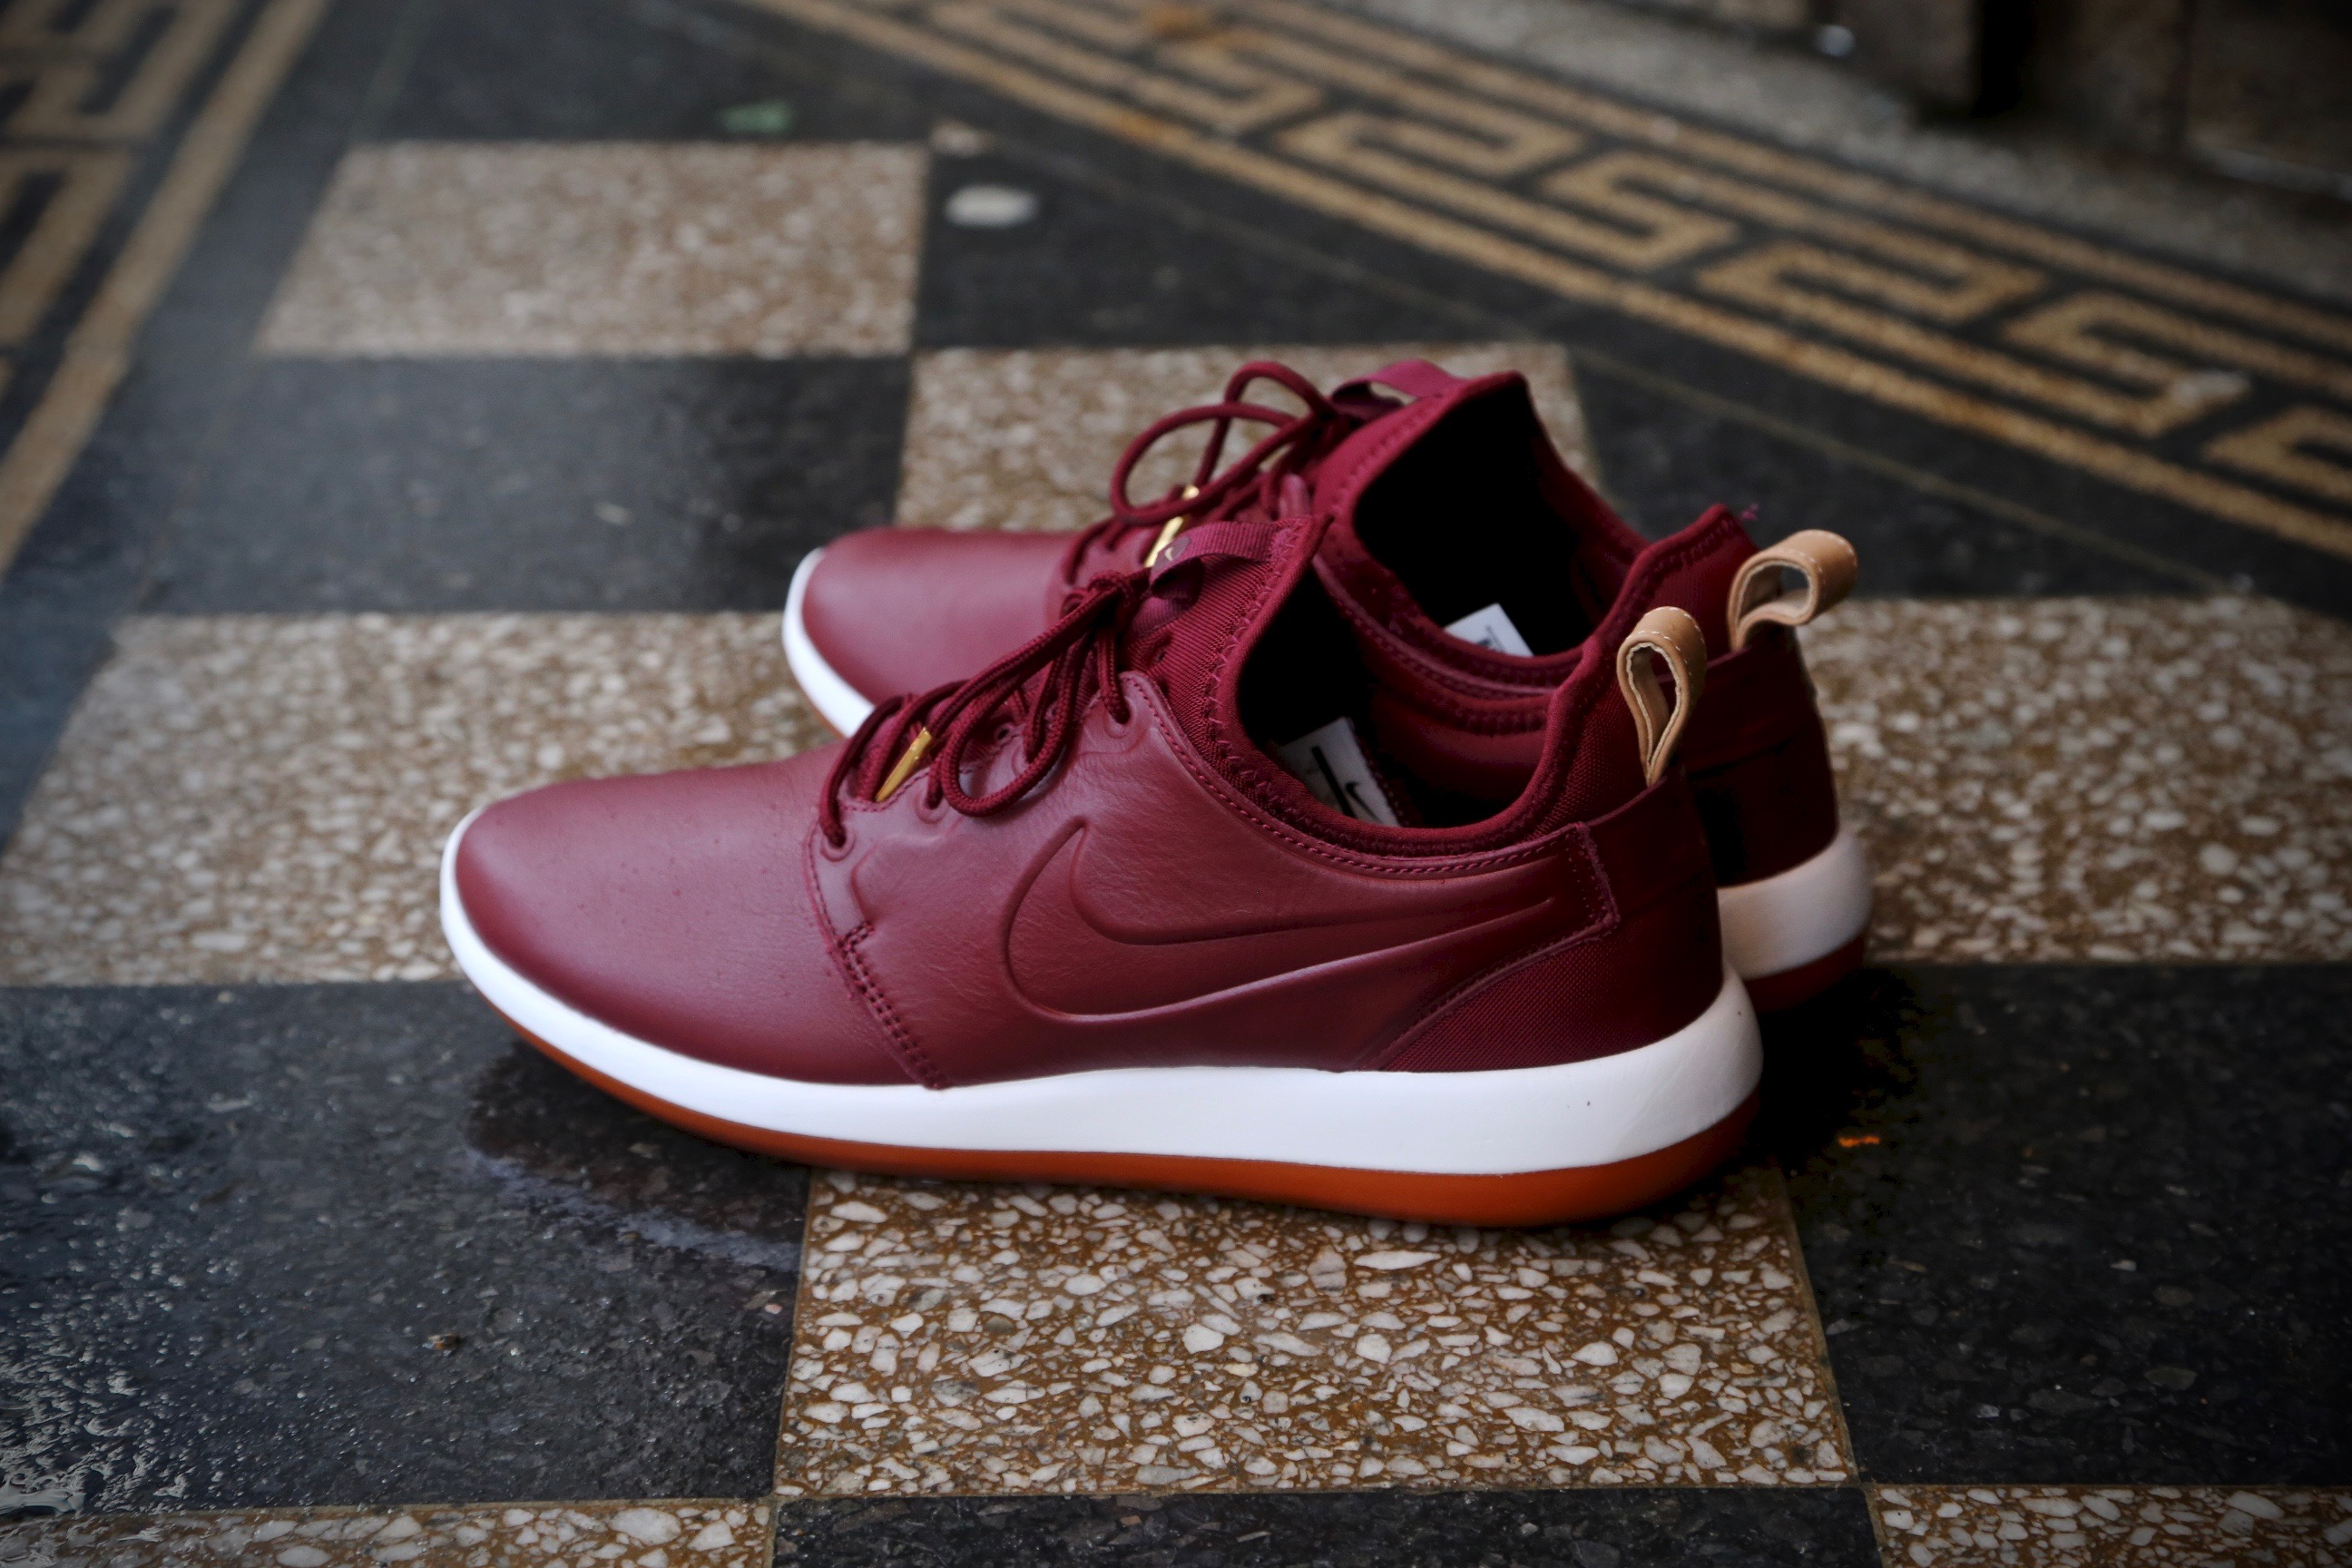 0e1034f67597 ... Nike Roshe Two Leather Premium b60p4680 · b60p4682 · b60p4685 ·  b60p4688 .